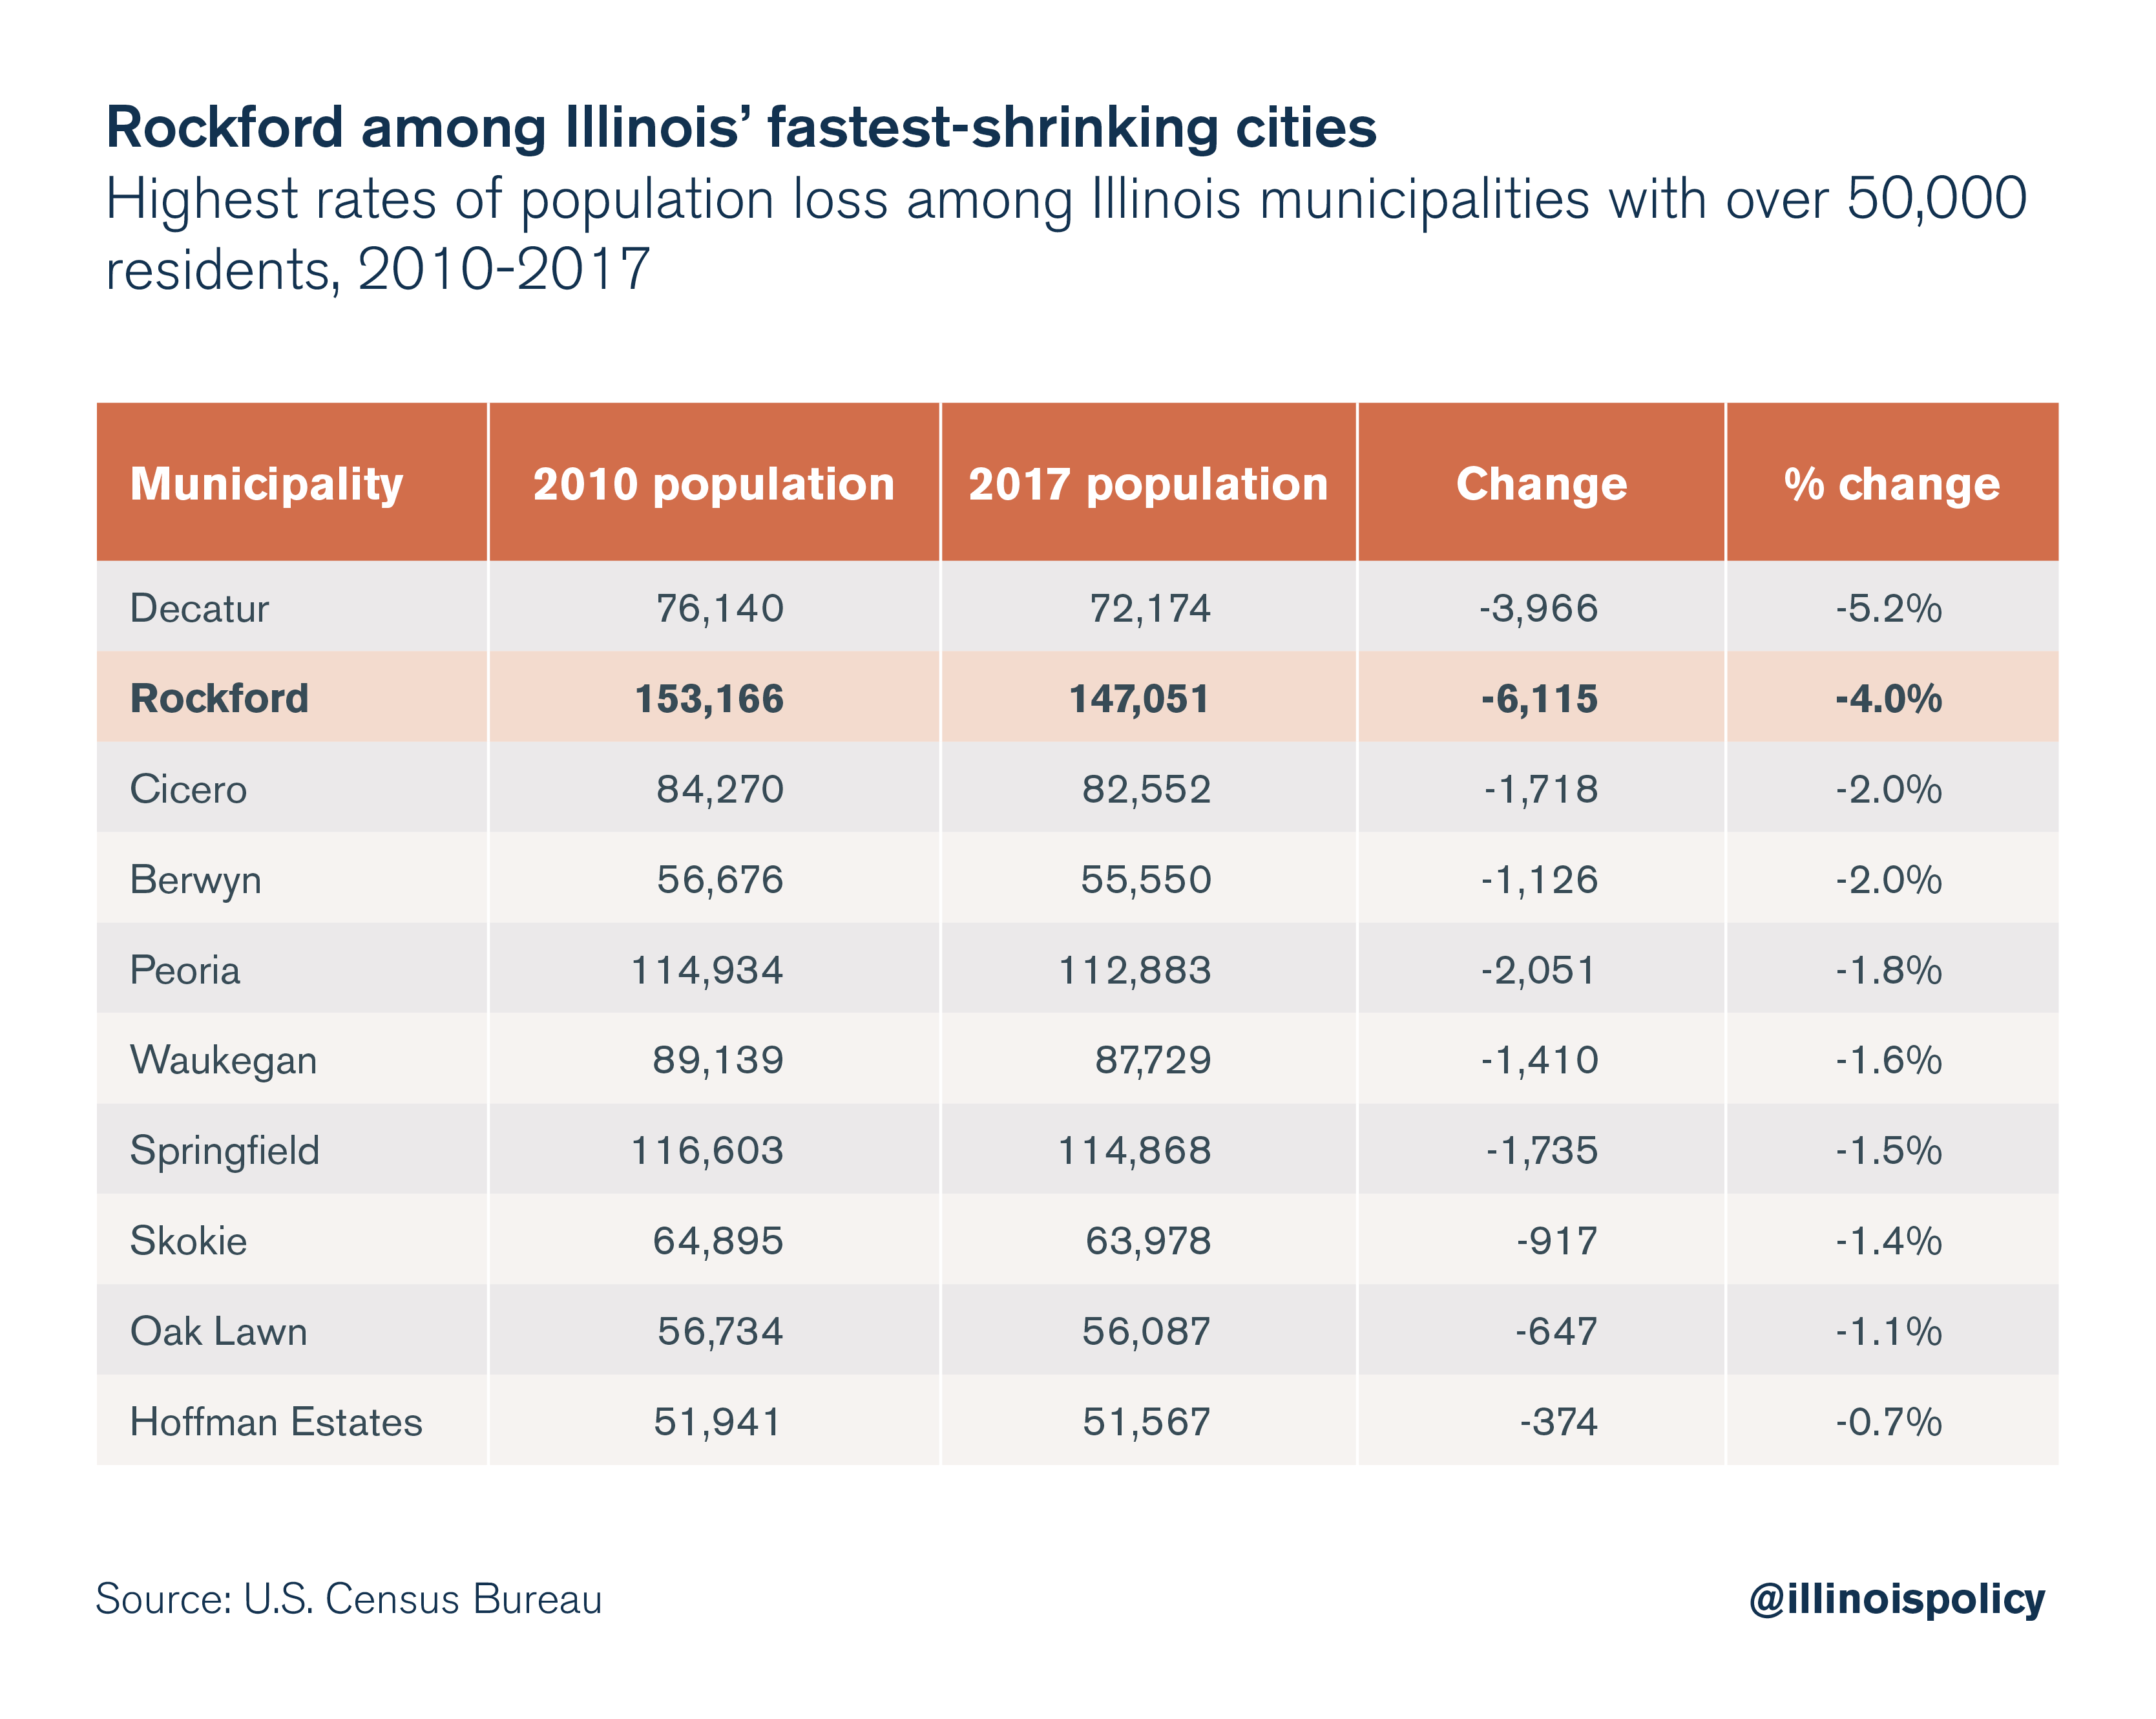 Rockford among Illinois' fastest-shrinking cities